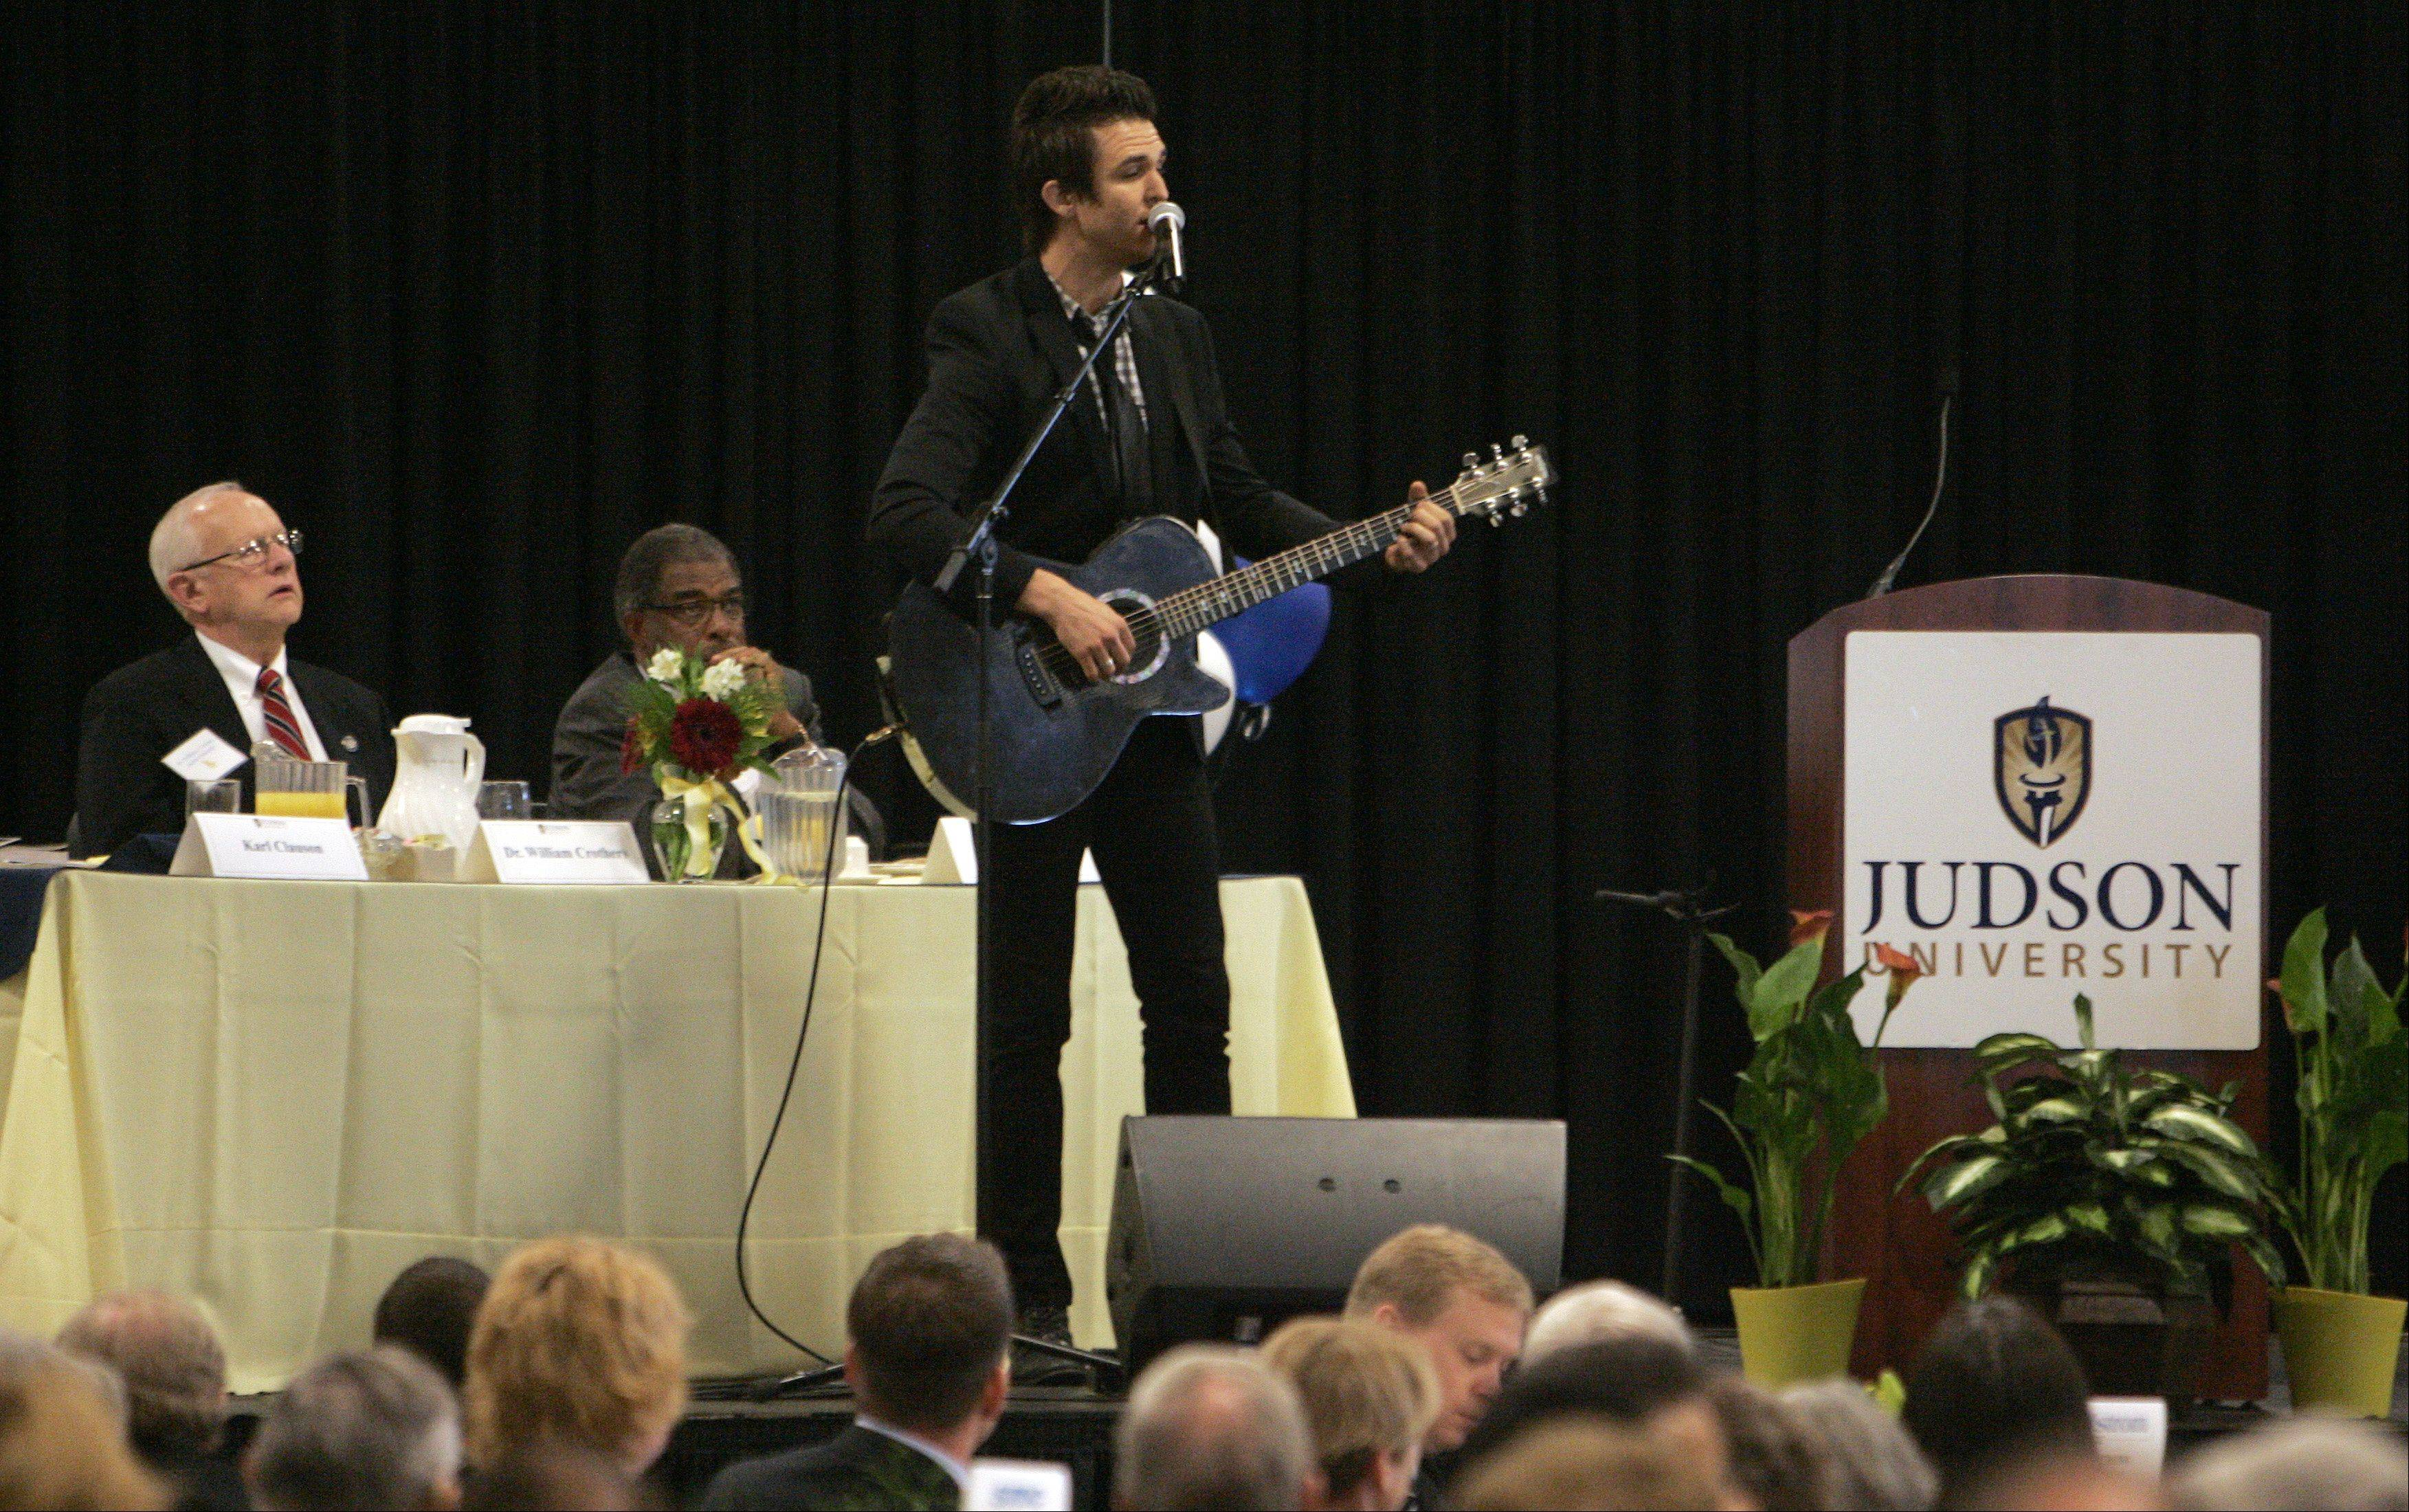 Judson graduate and Citizens Way musician Ben Calhoun offers prayer and a song Wednesday during the university's annual prayer breakfast in Elgin.